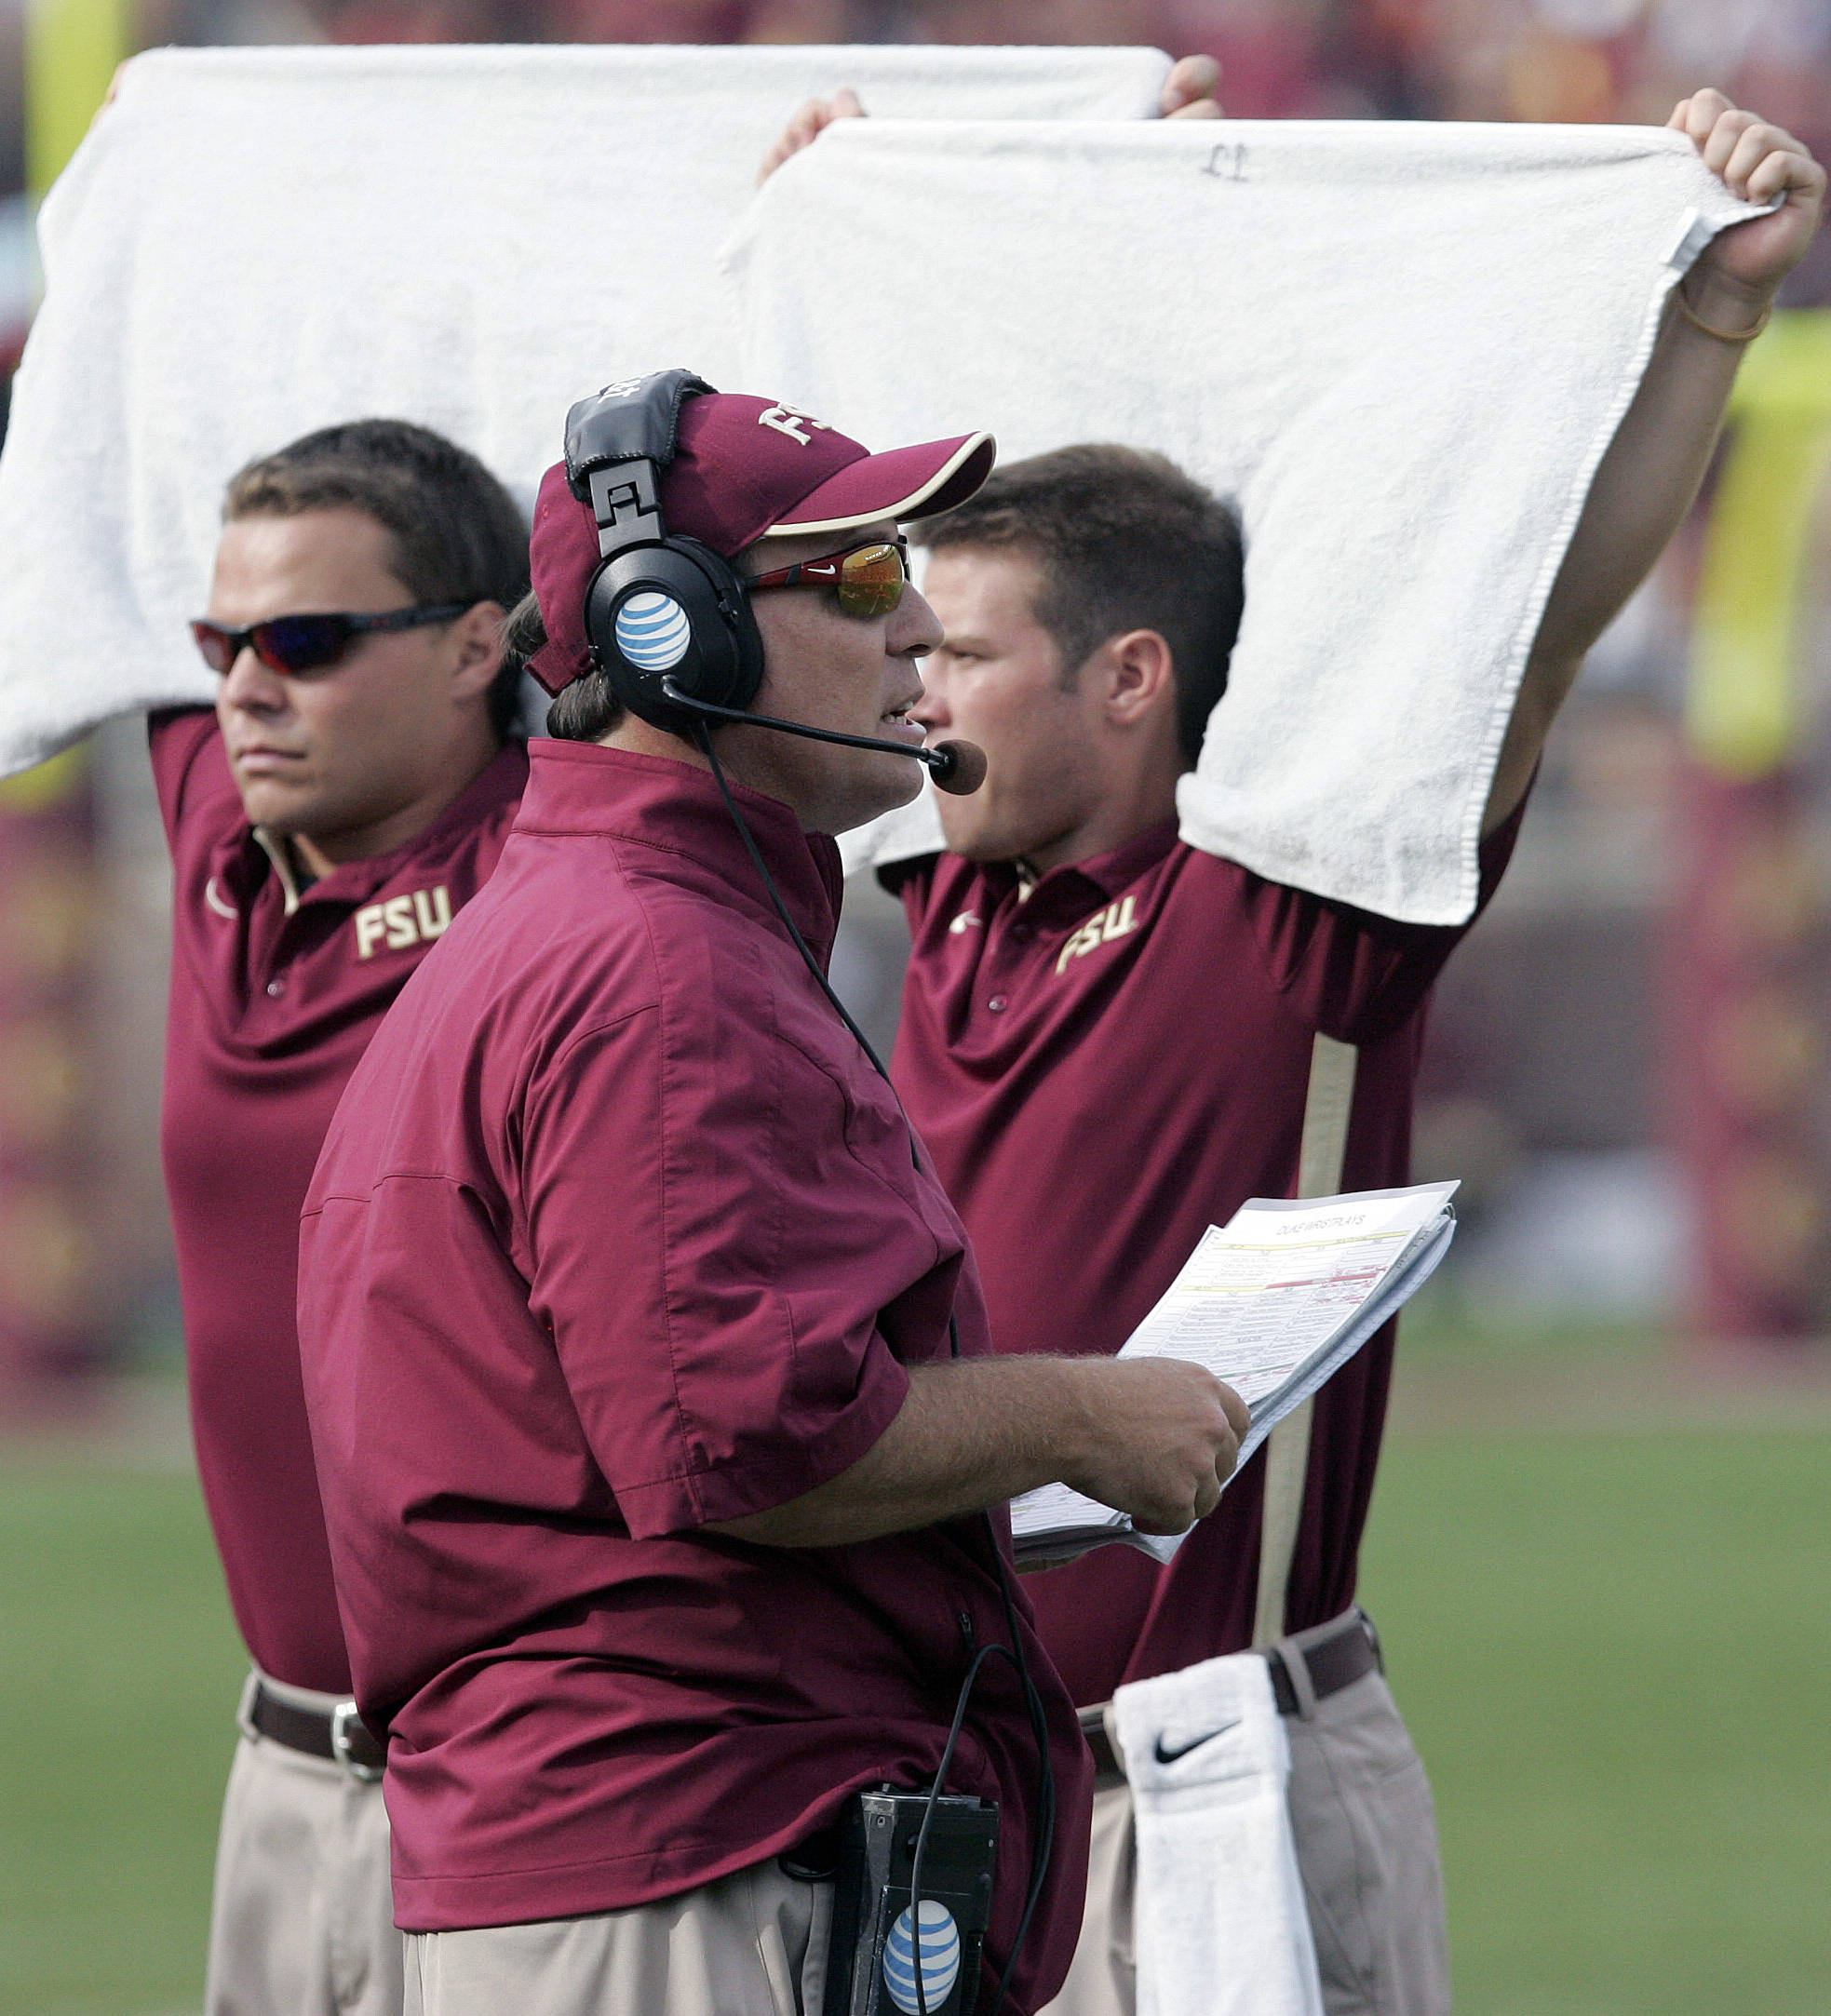 Florida State head coach Jimbo Fisher is shielded by towels as he calls a play against Duke in the first quarter. (AP Photo/Steve Cannon)